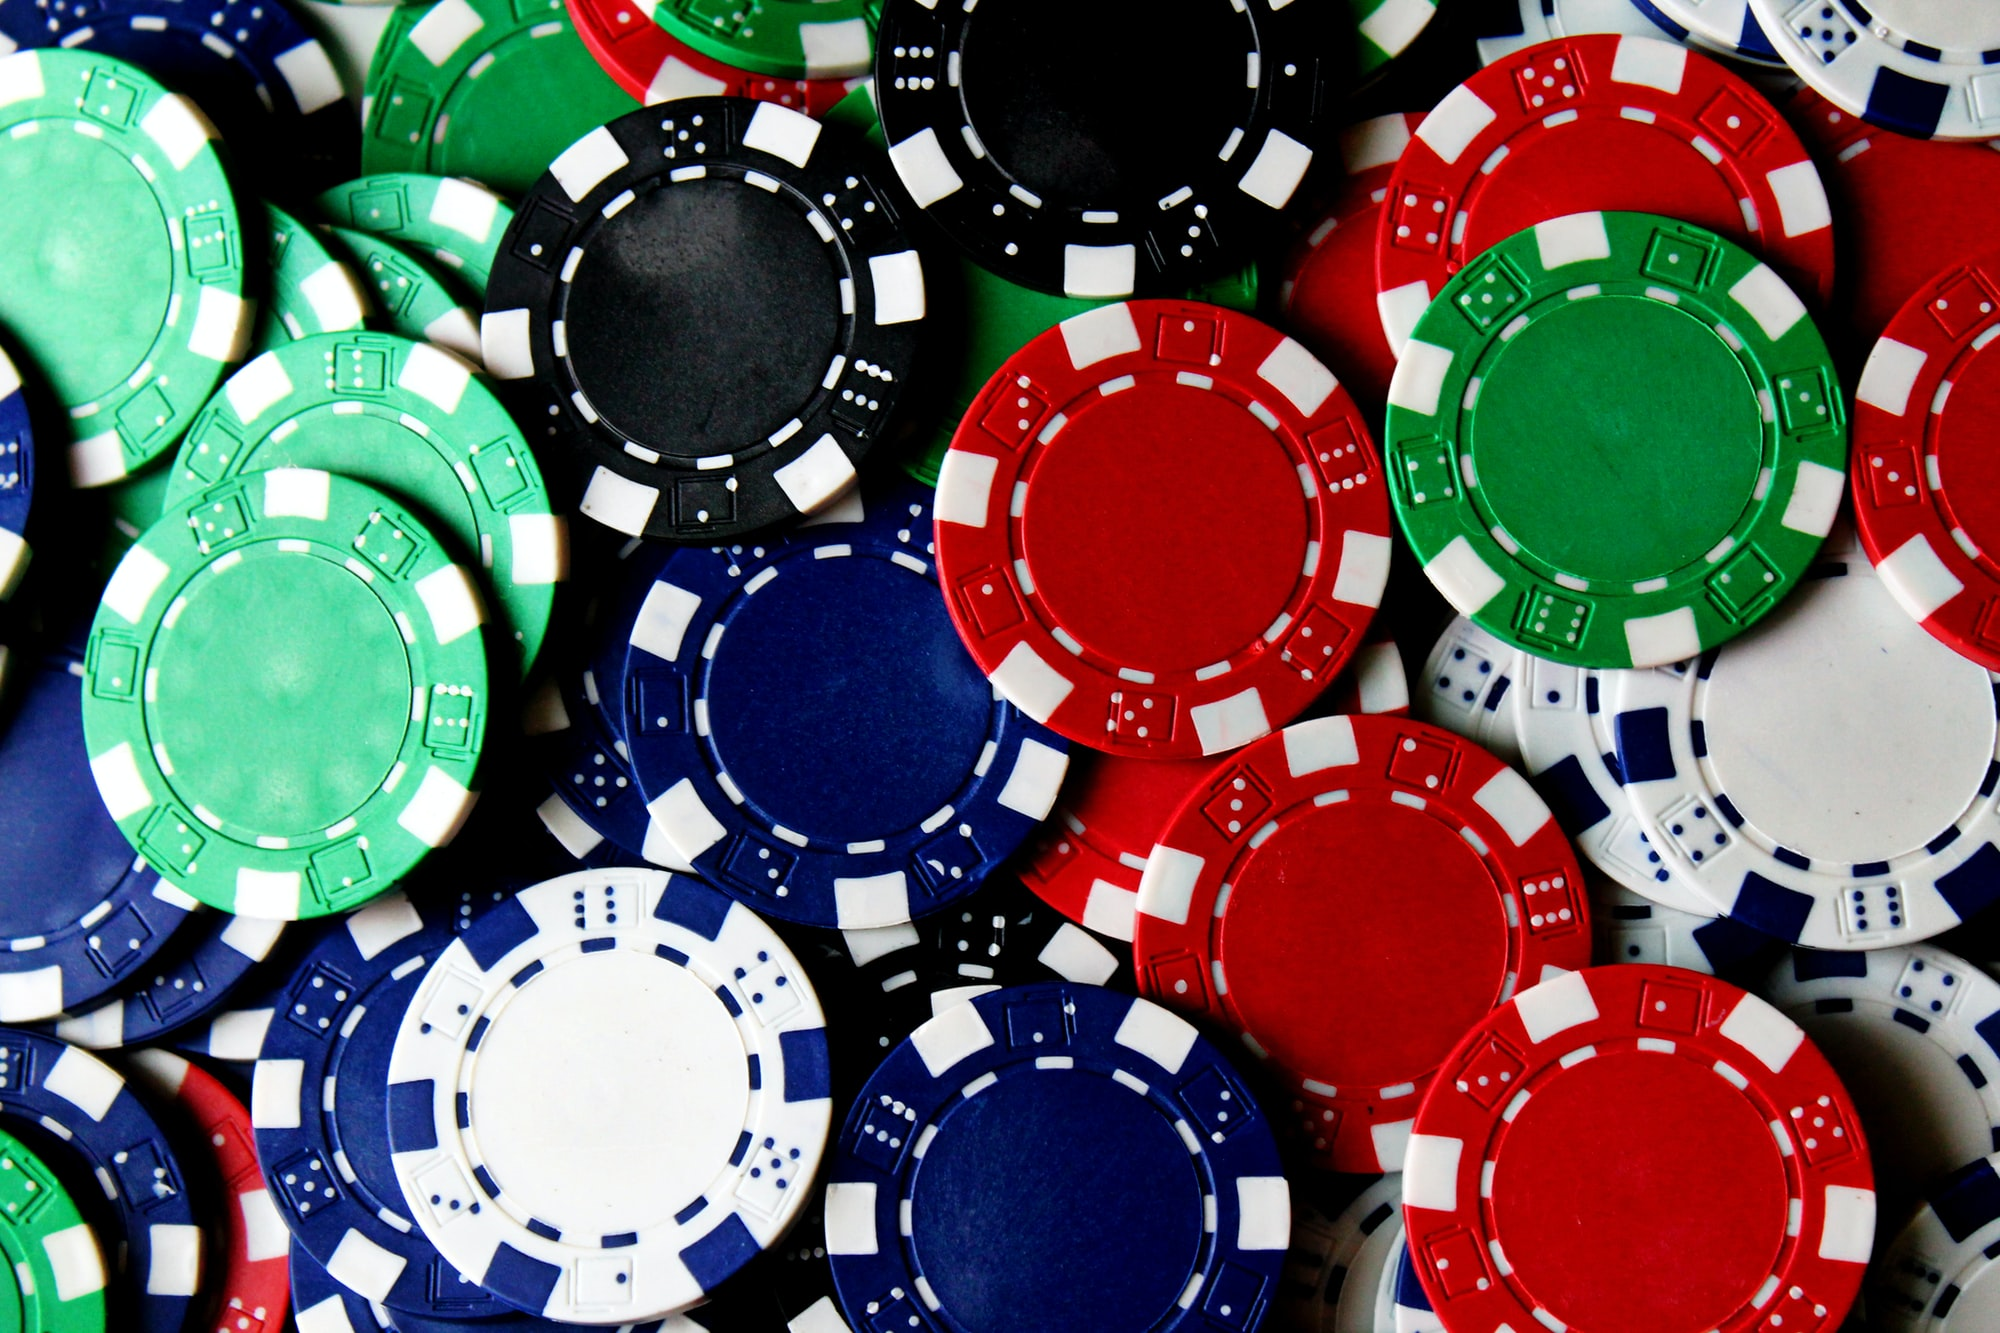 A collection of poker chips in various colors.